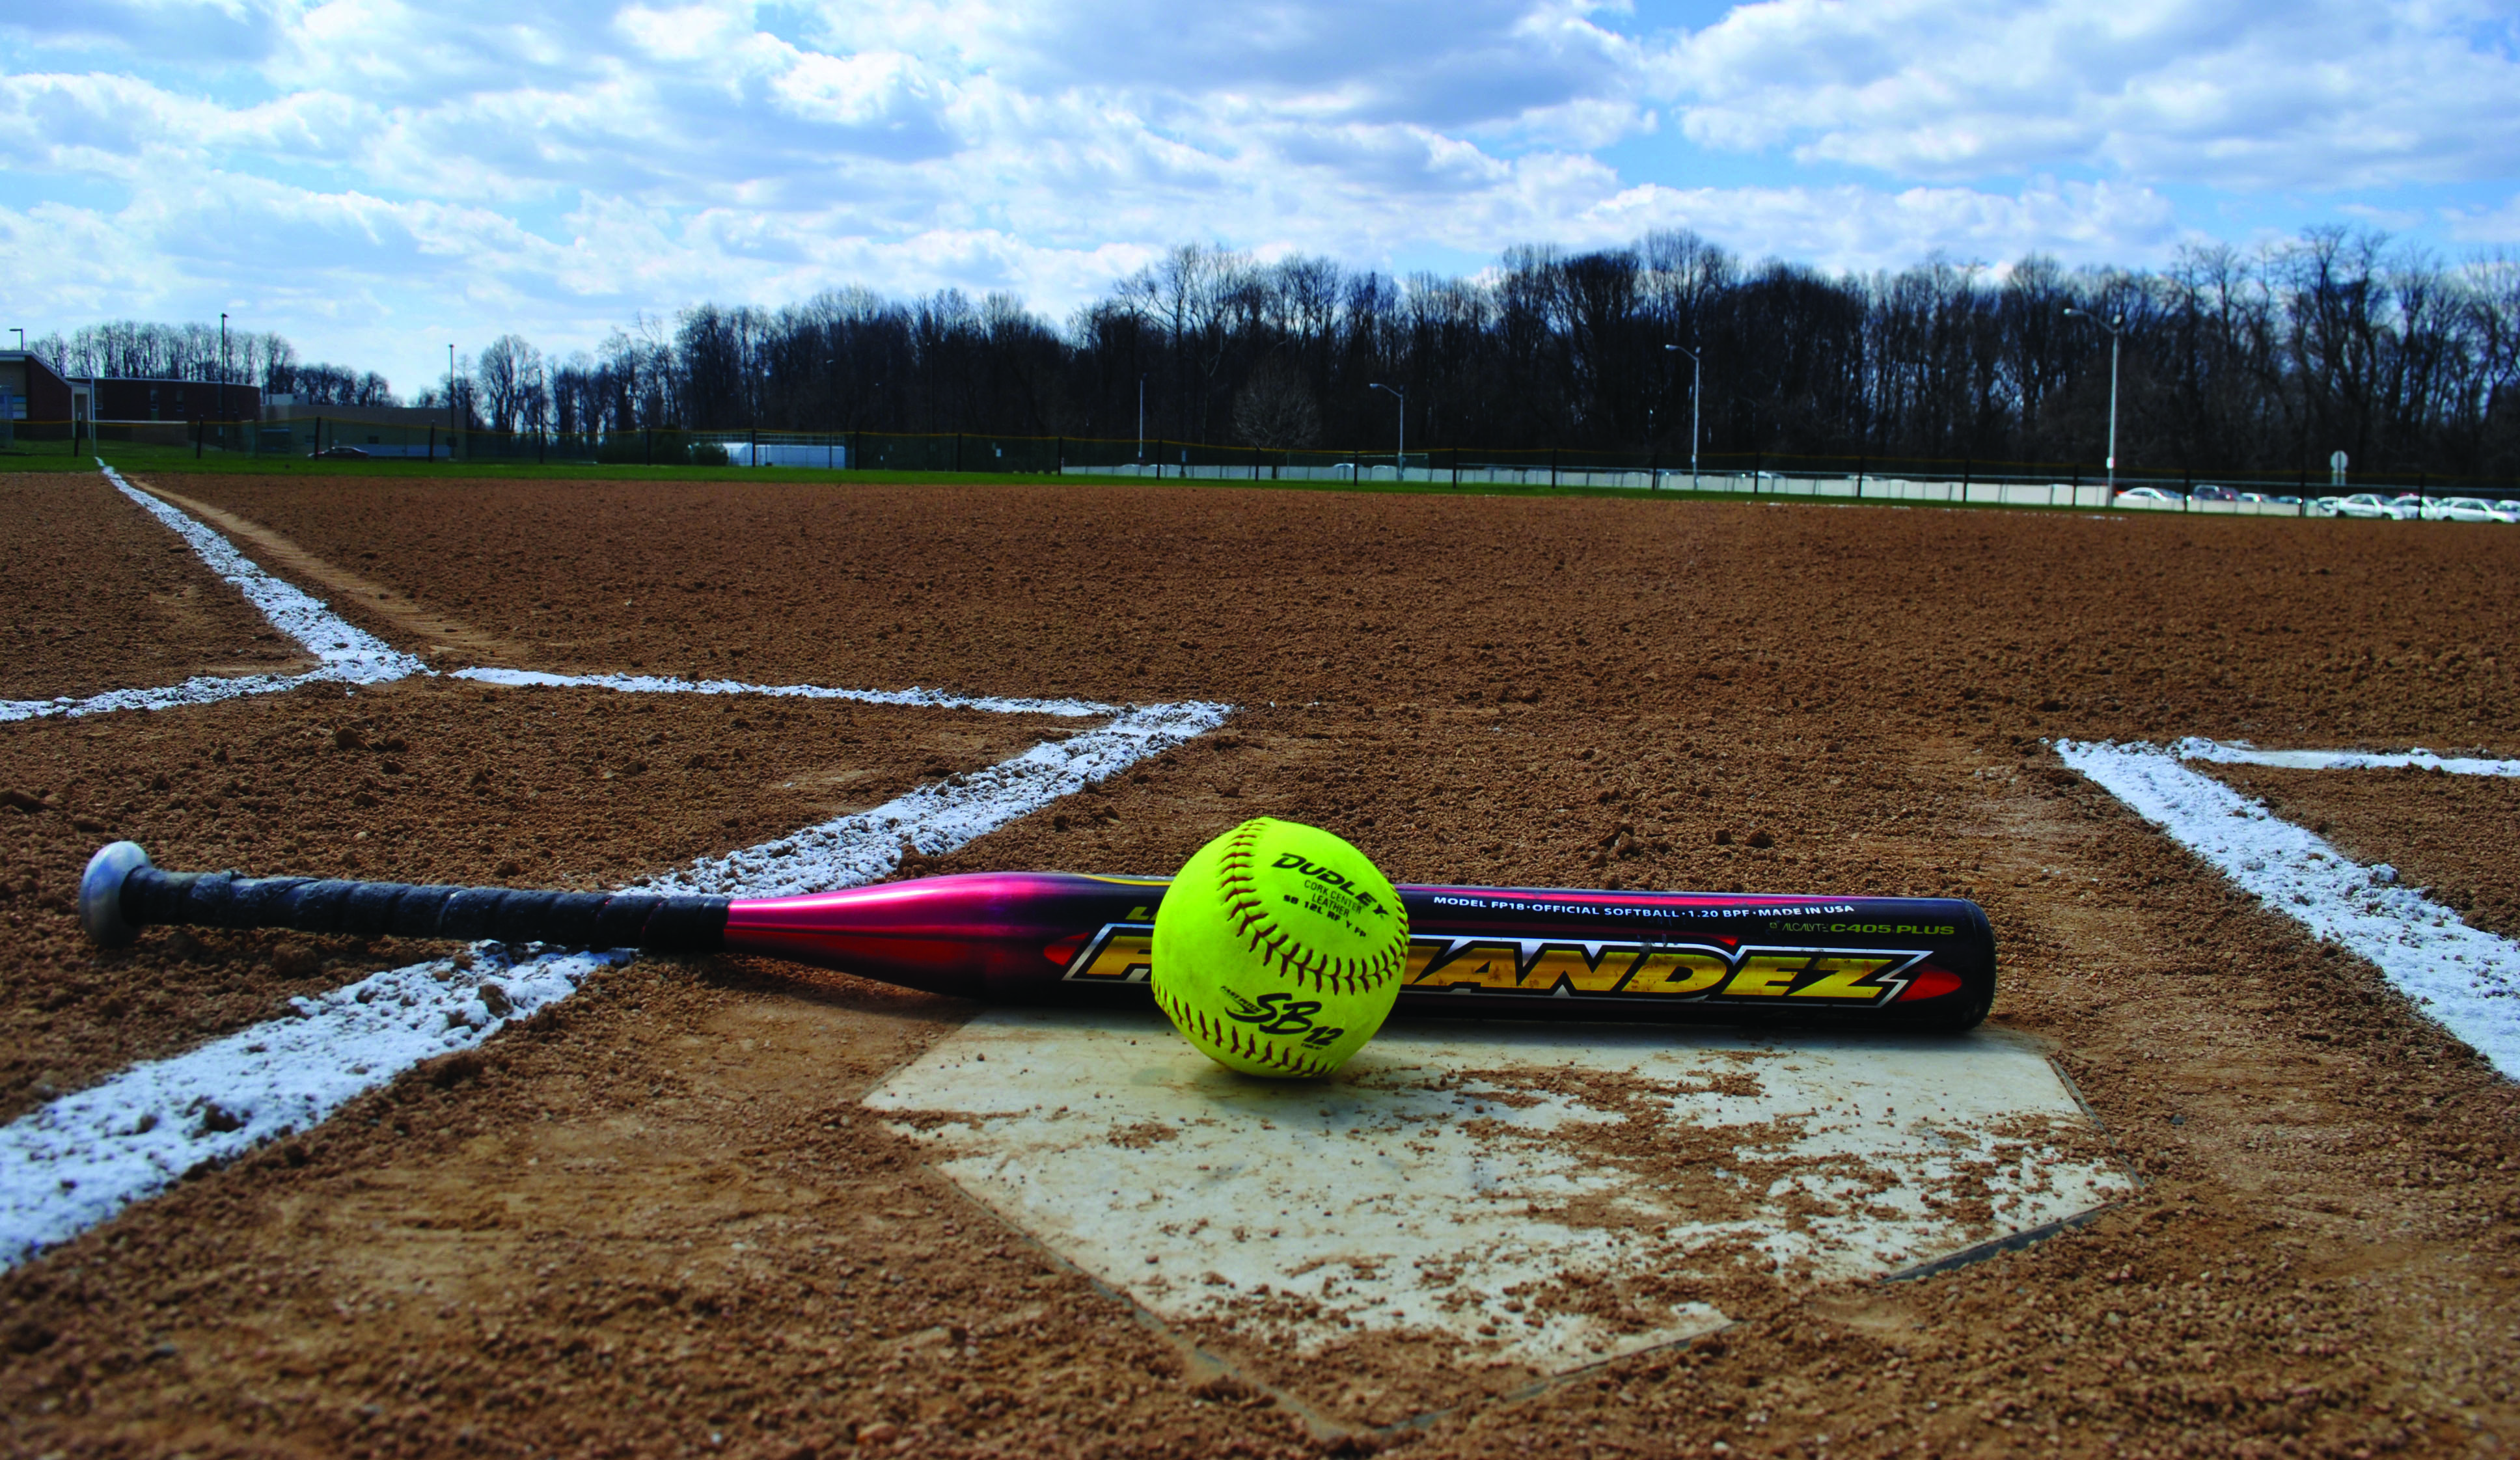 38 Softball Backgrounds Download Free Hd Backgrounds: Best Softball Wallpapers